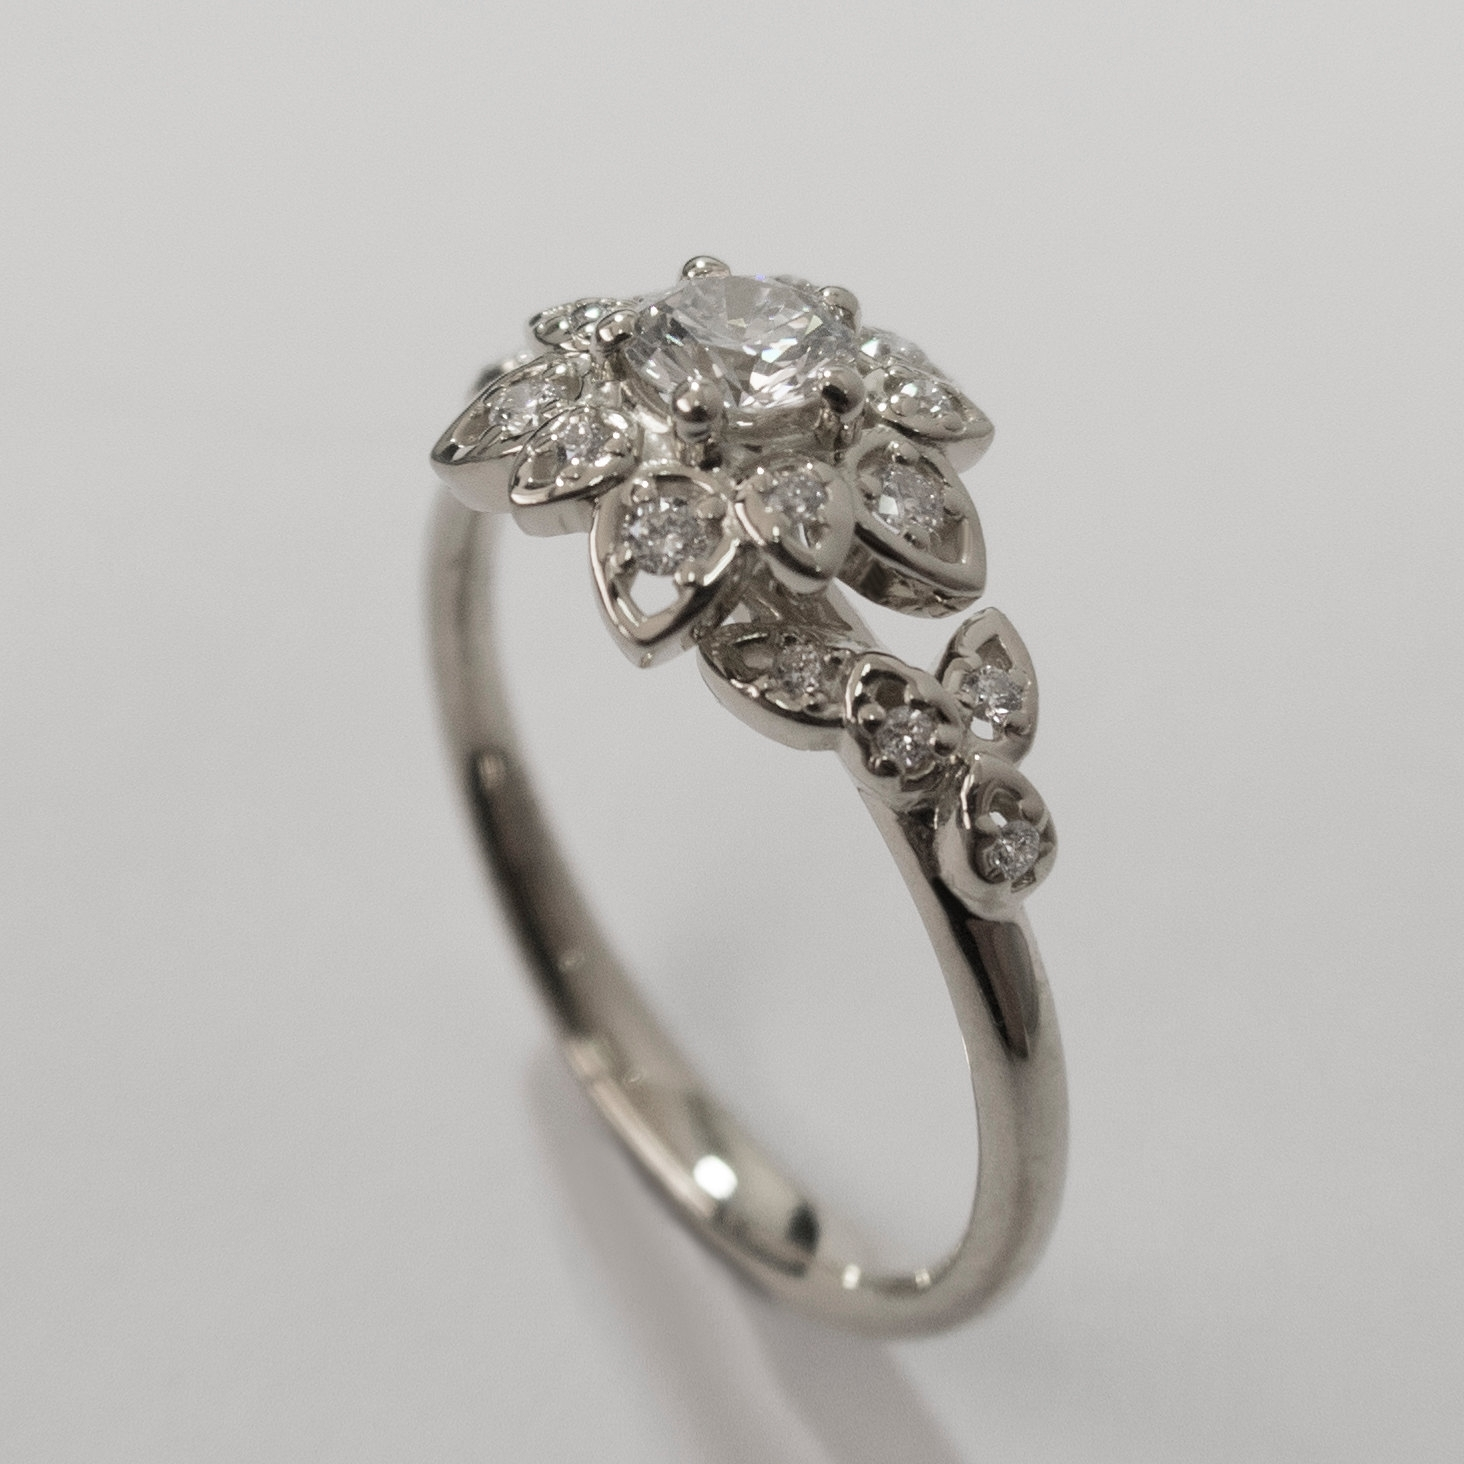 Vintage Filigree White Gold And Diamond Petal Engagement With 2018 Diamond Flower Vintage Style Engagement Rings In 14K White Gold (View 13 of 15)